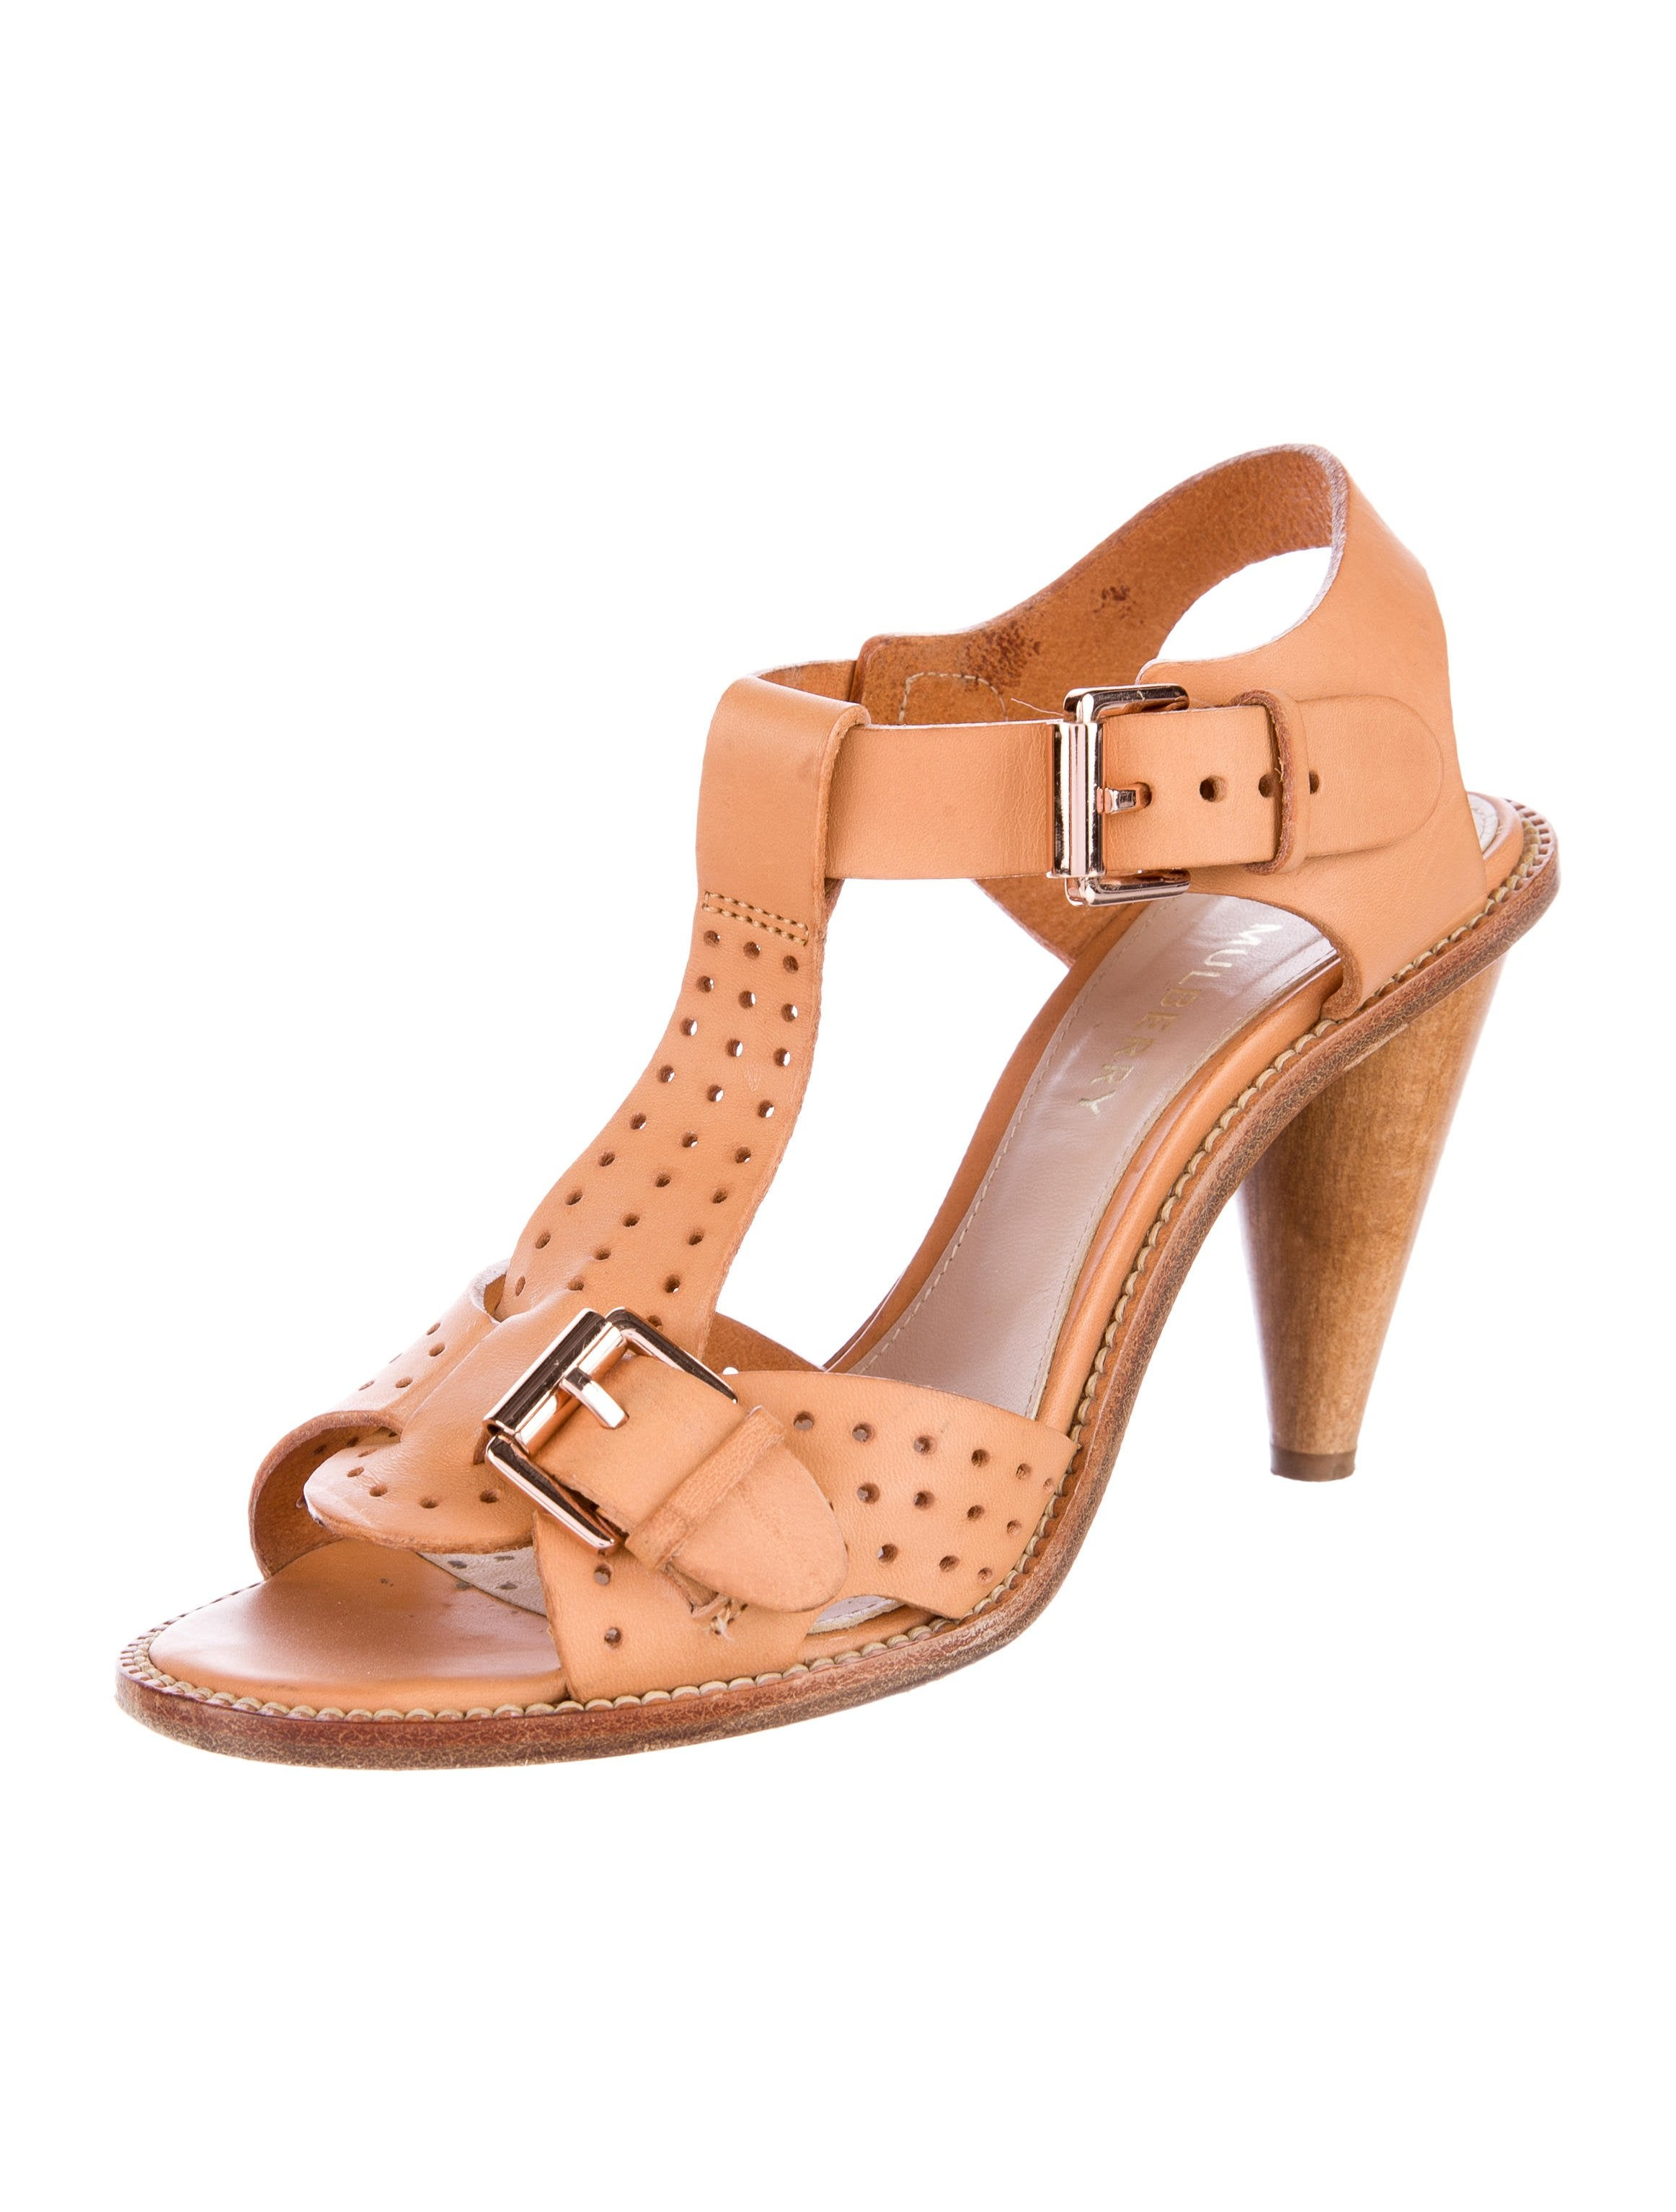 Mulberry Edie Perforated Sandals low shipping q9nQrn